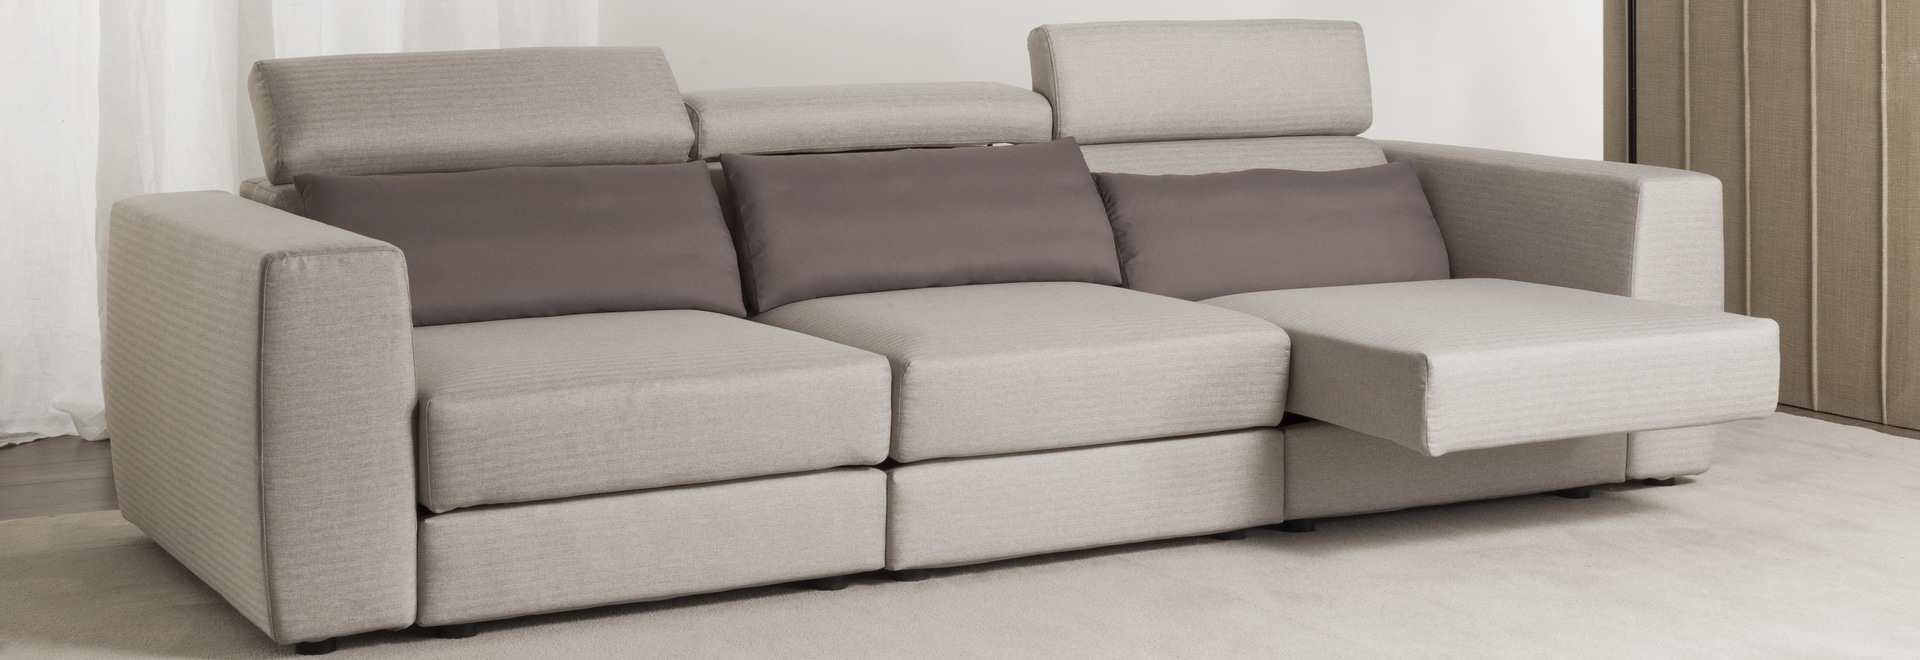 Delicieux Relax: Sliding Seats Sofa